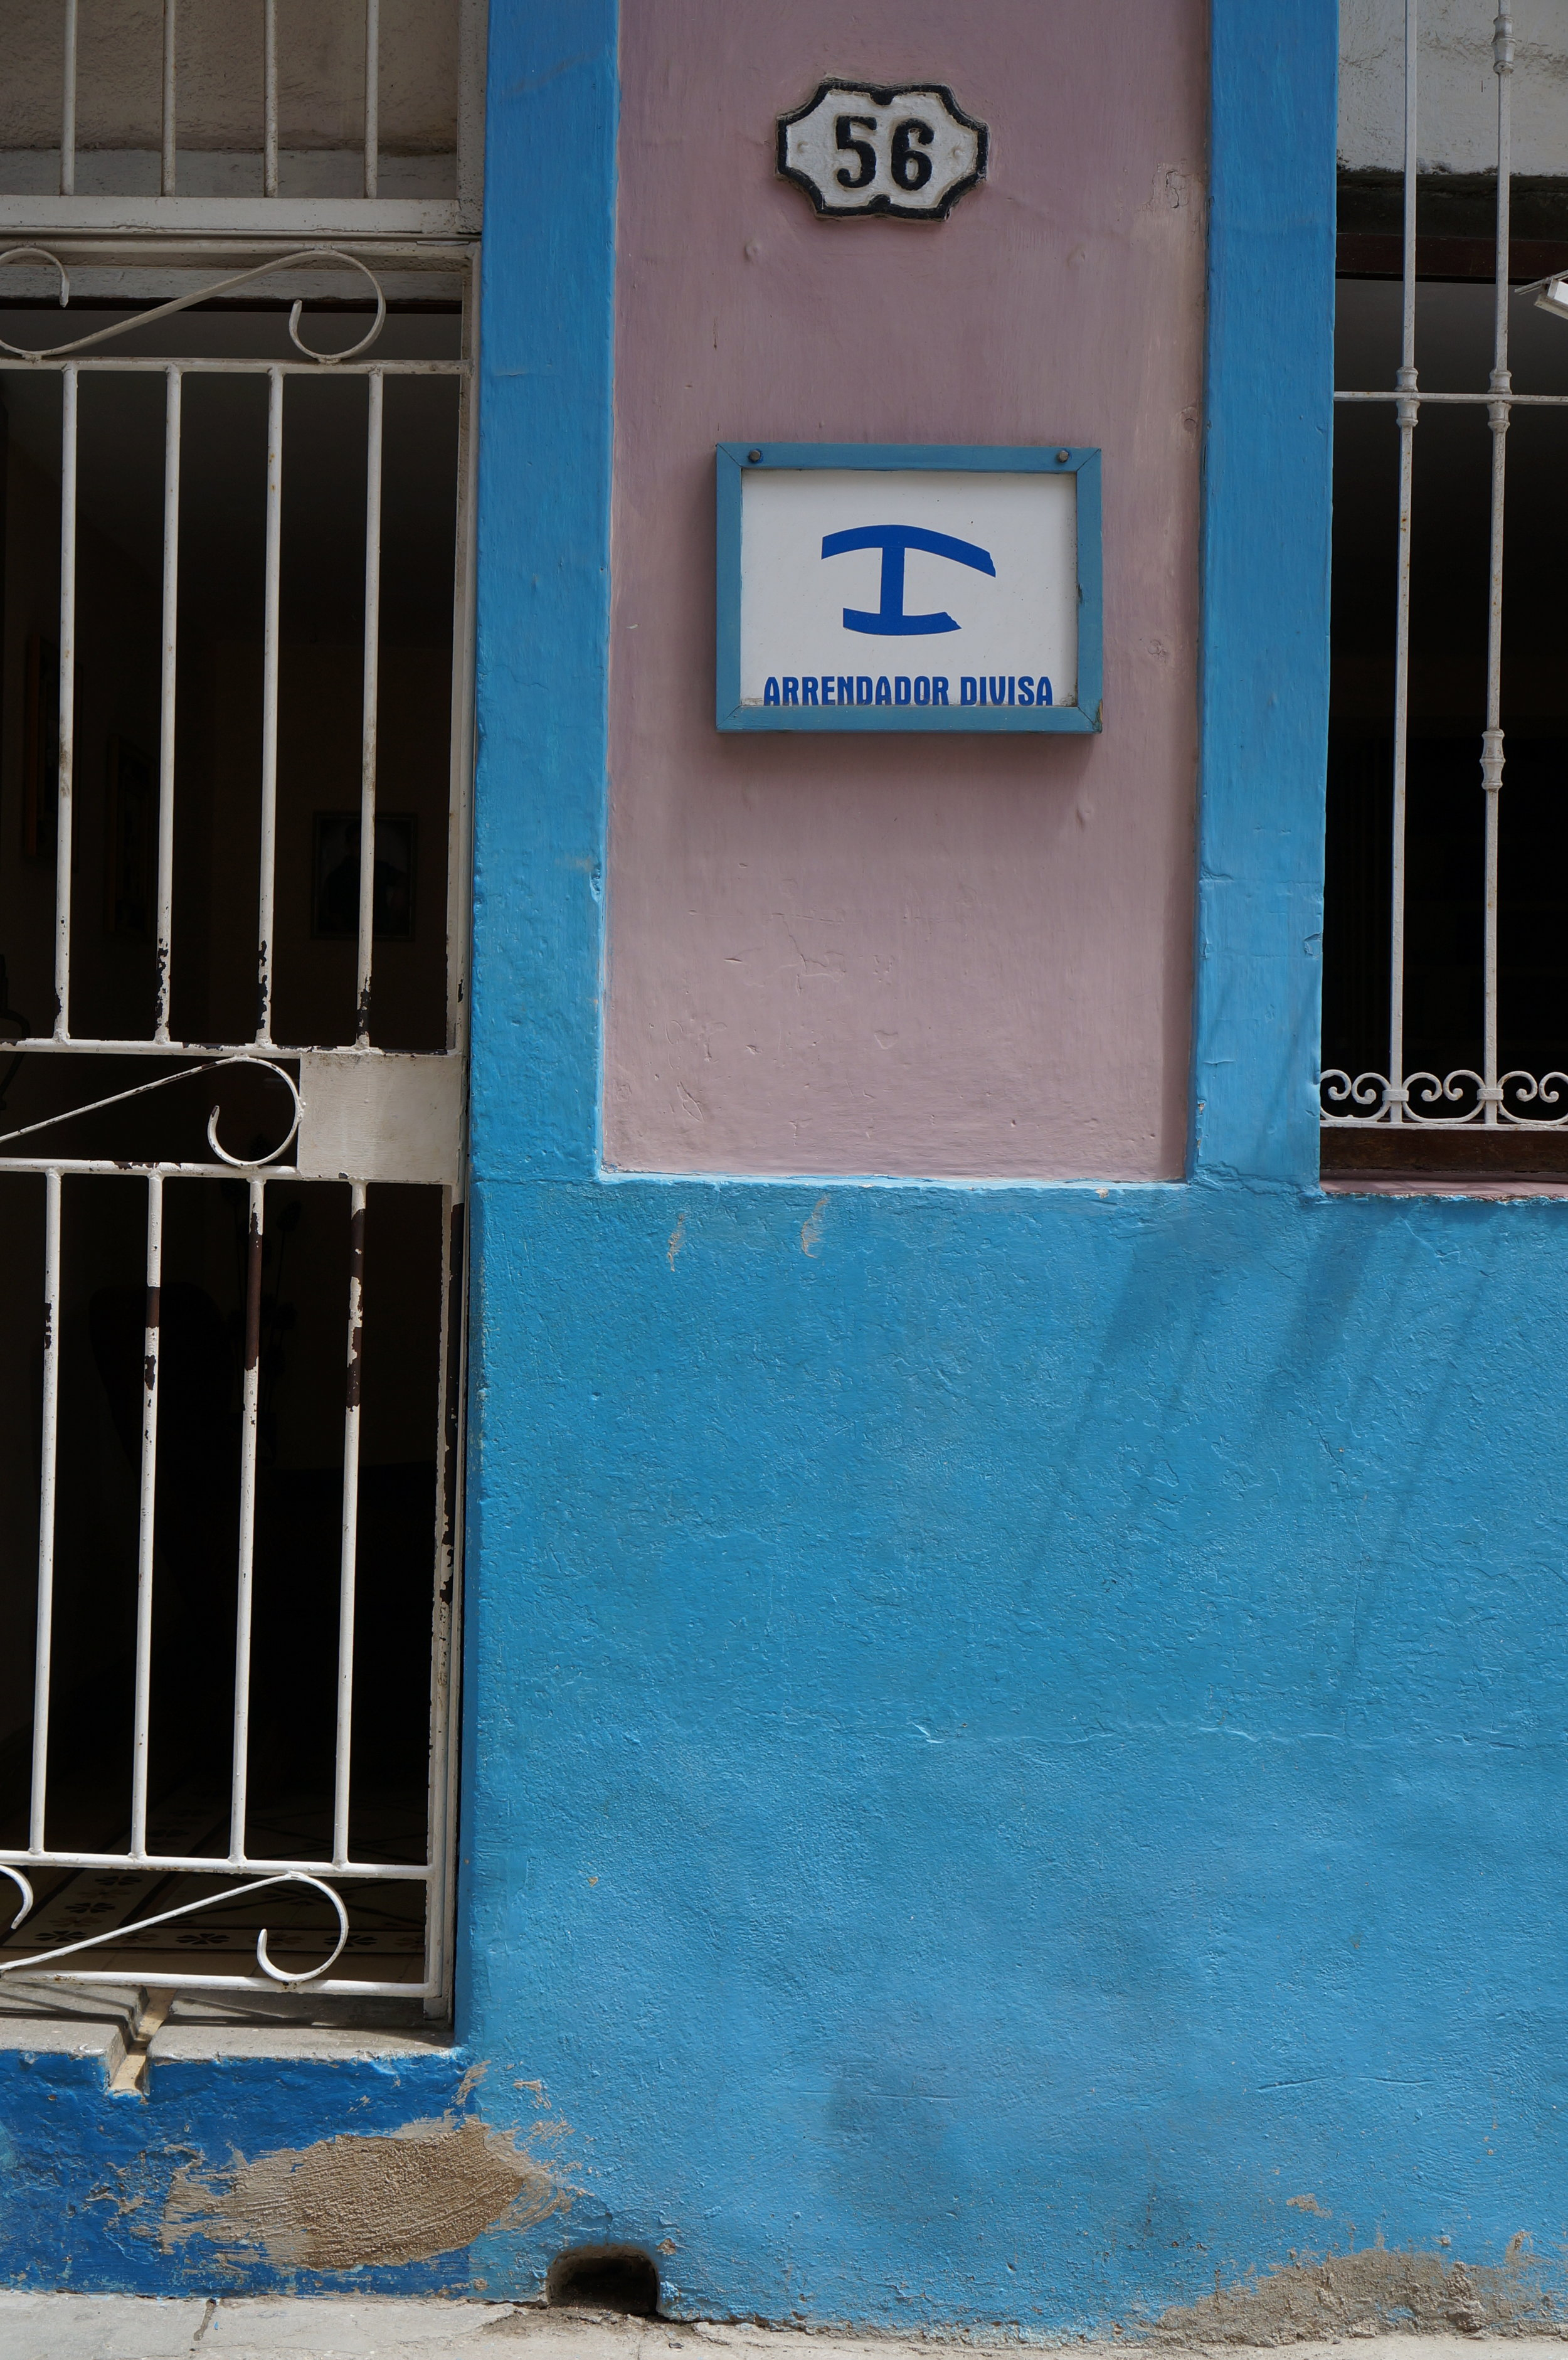 The sign indicating a Casa Particular (room for rent in private home)